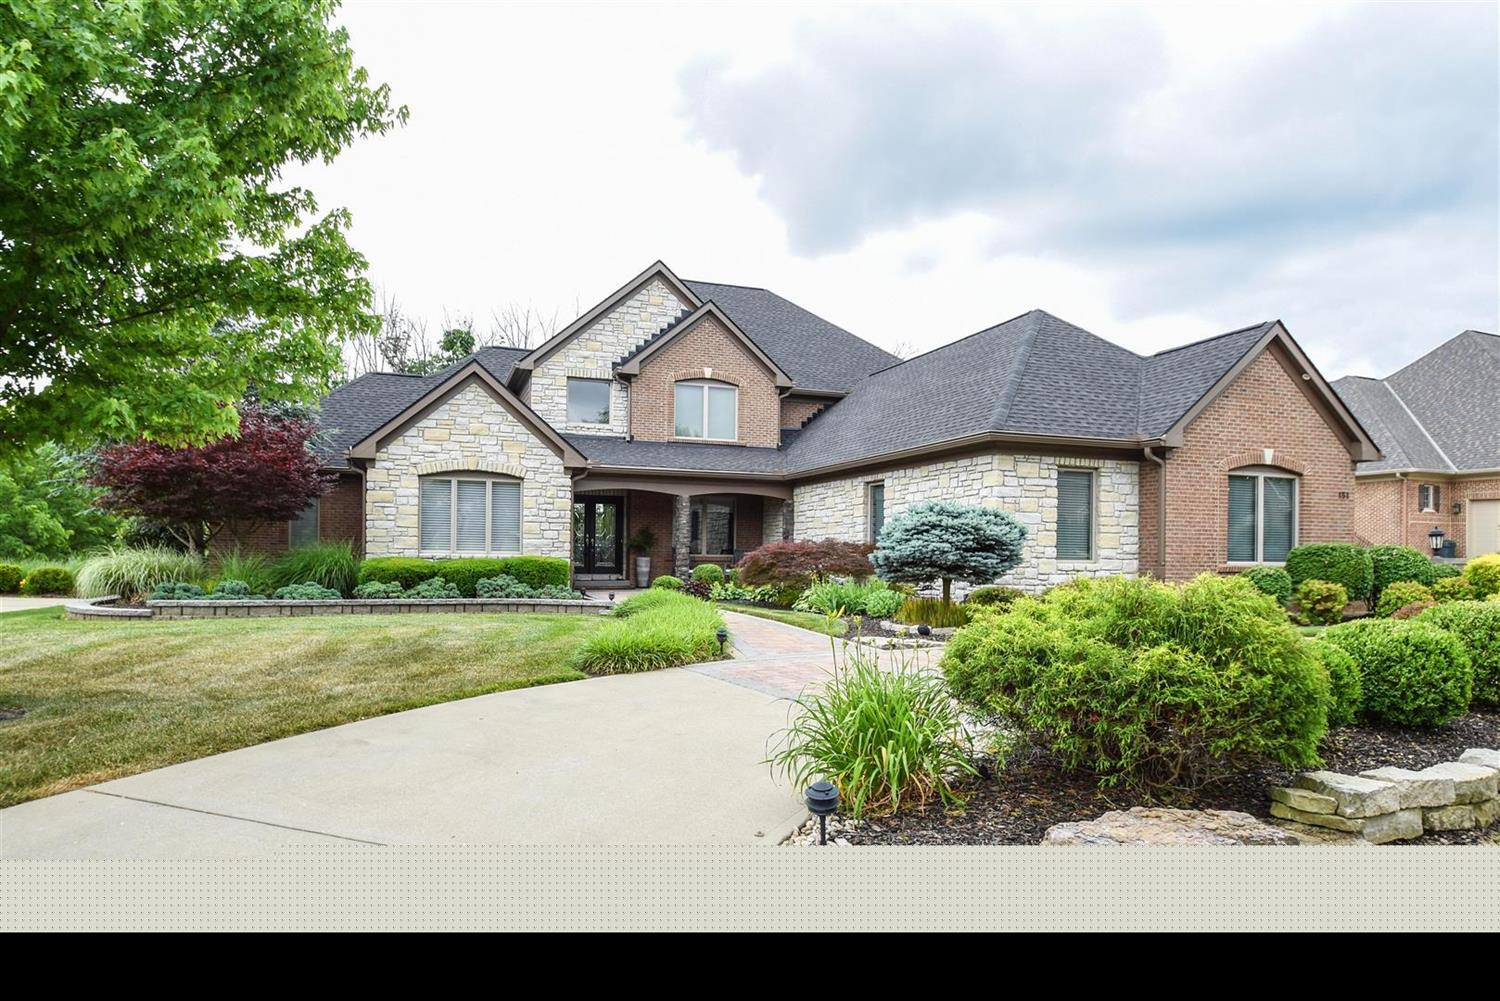 151 Vista Ridge Dr South Lebanon, OH